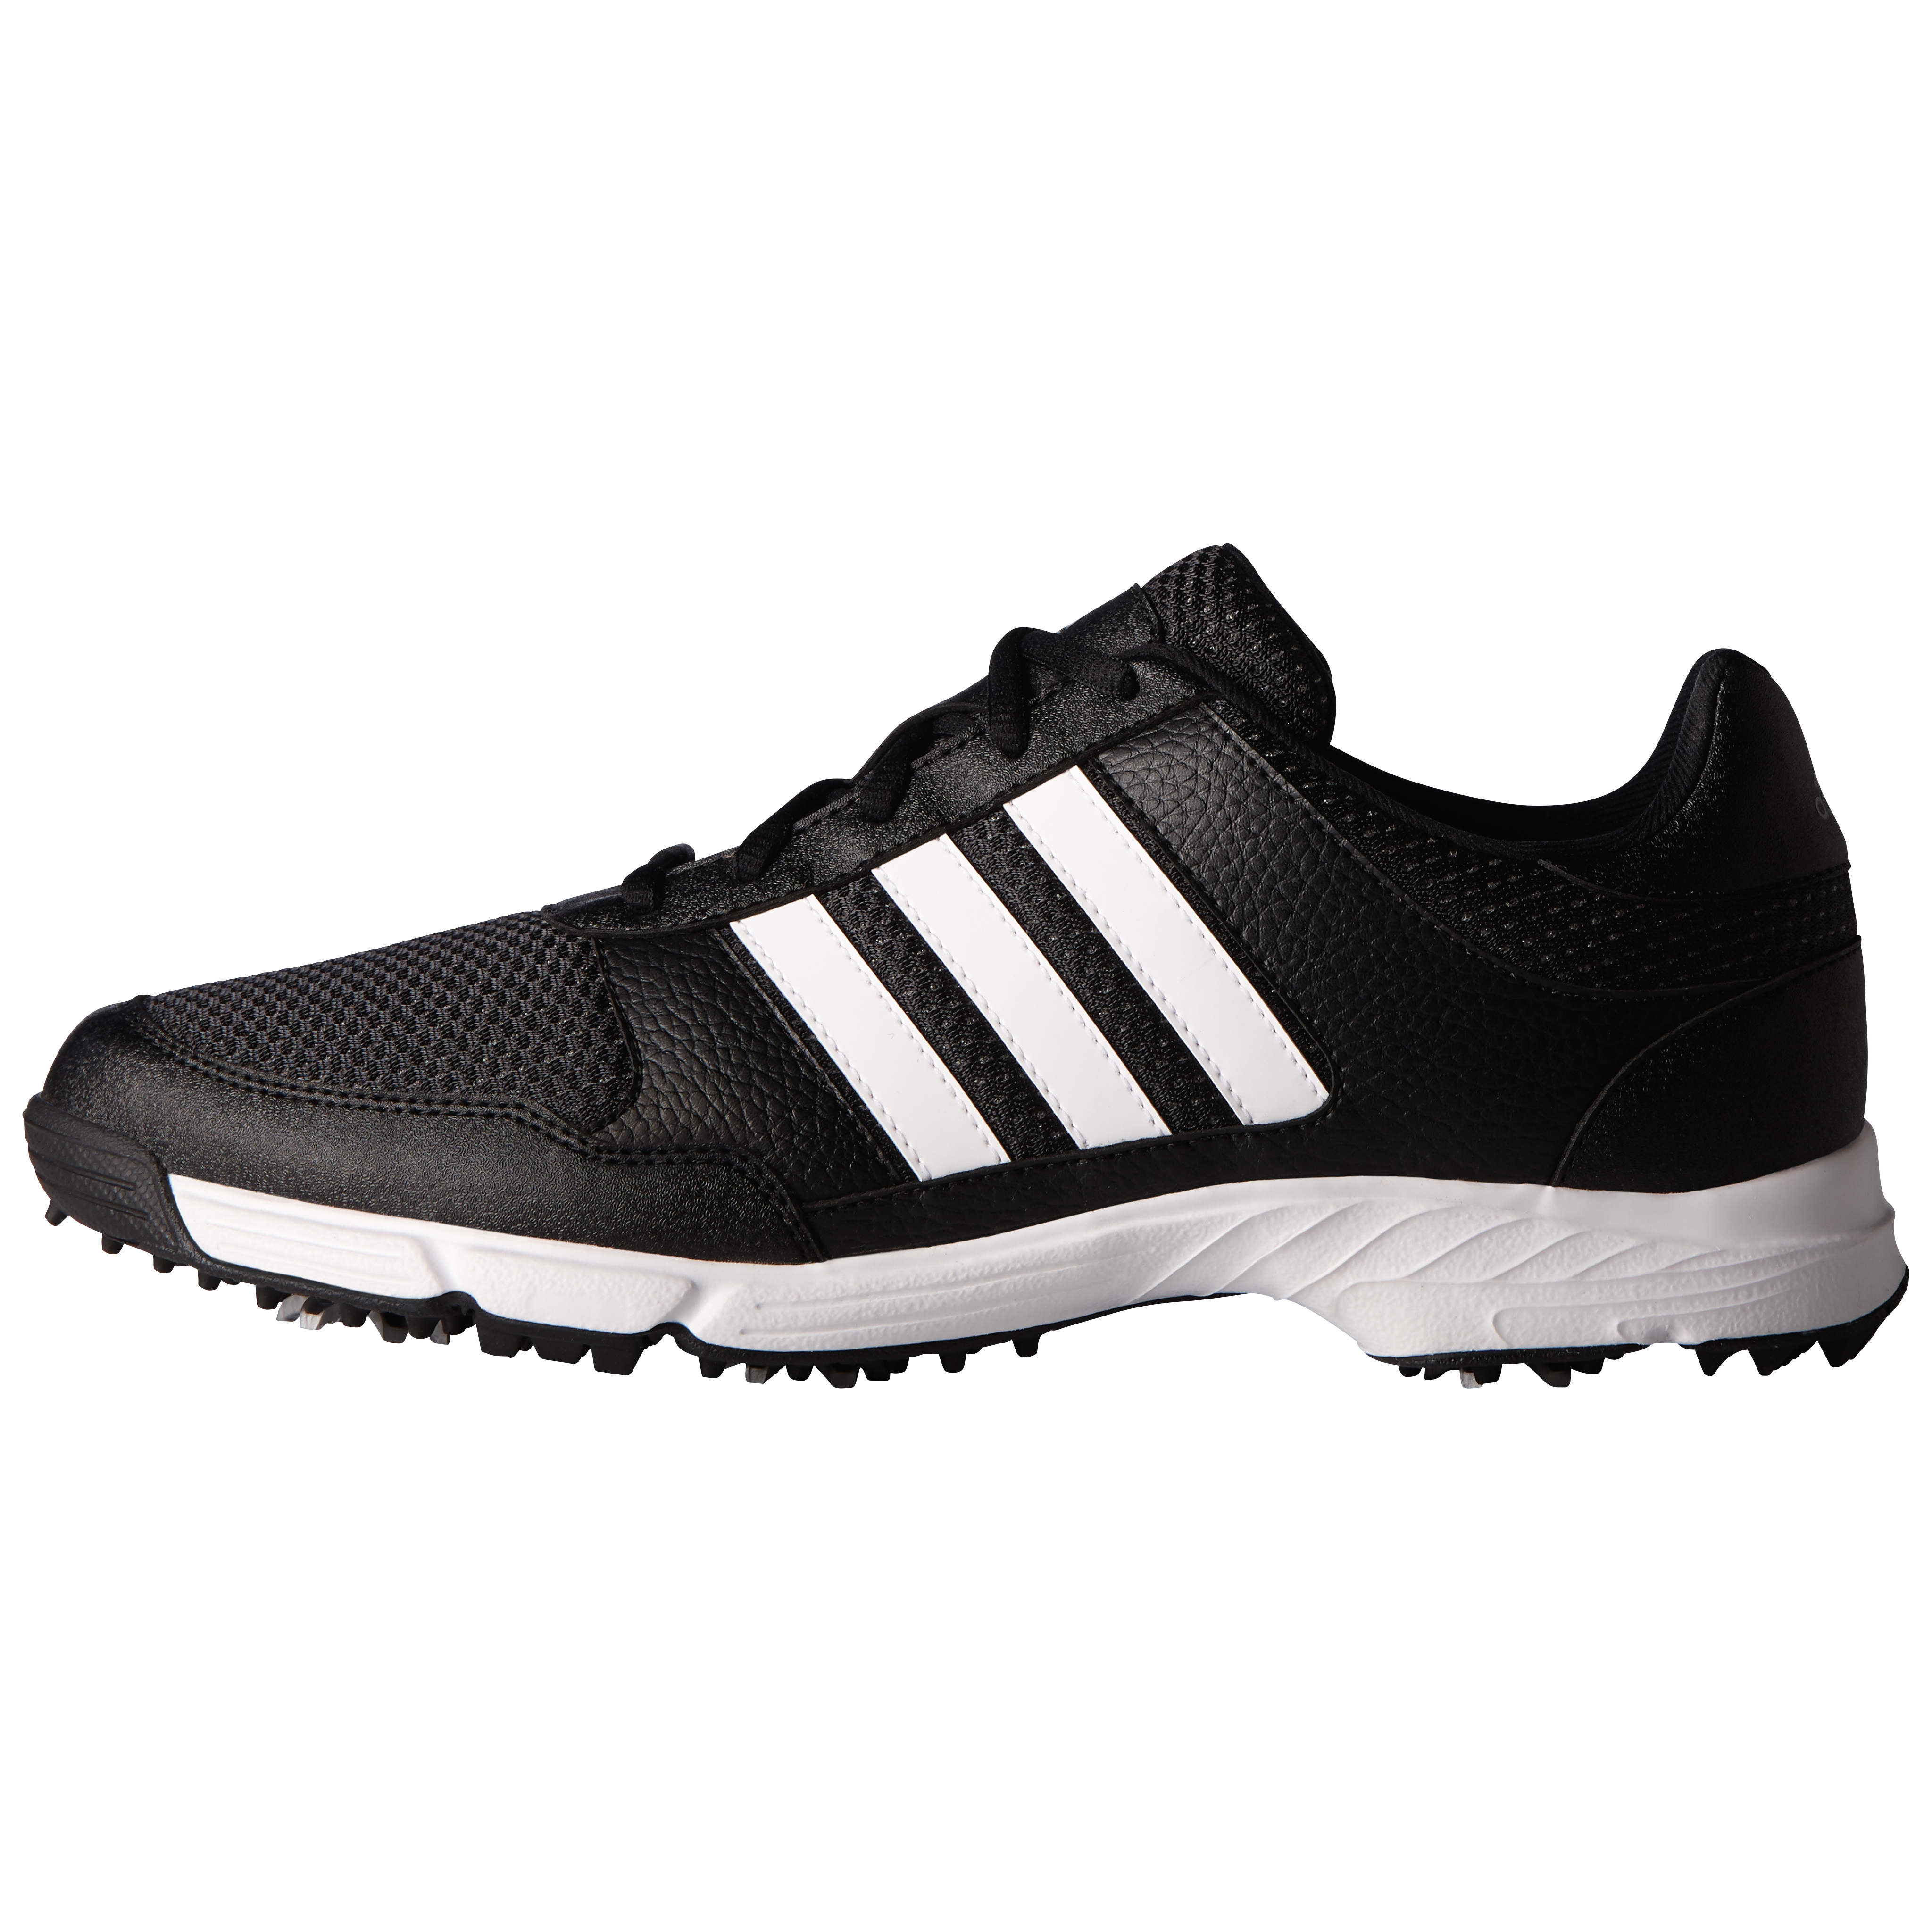 detailed look 794d1 c9aaa Adidas Tech Response Shoes   RockBottomGolf.com